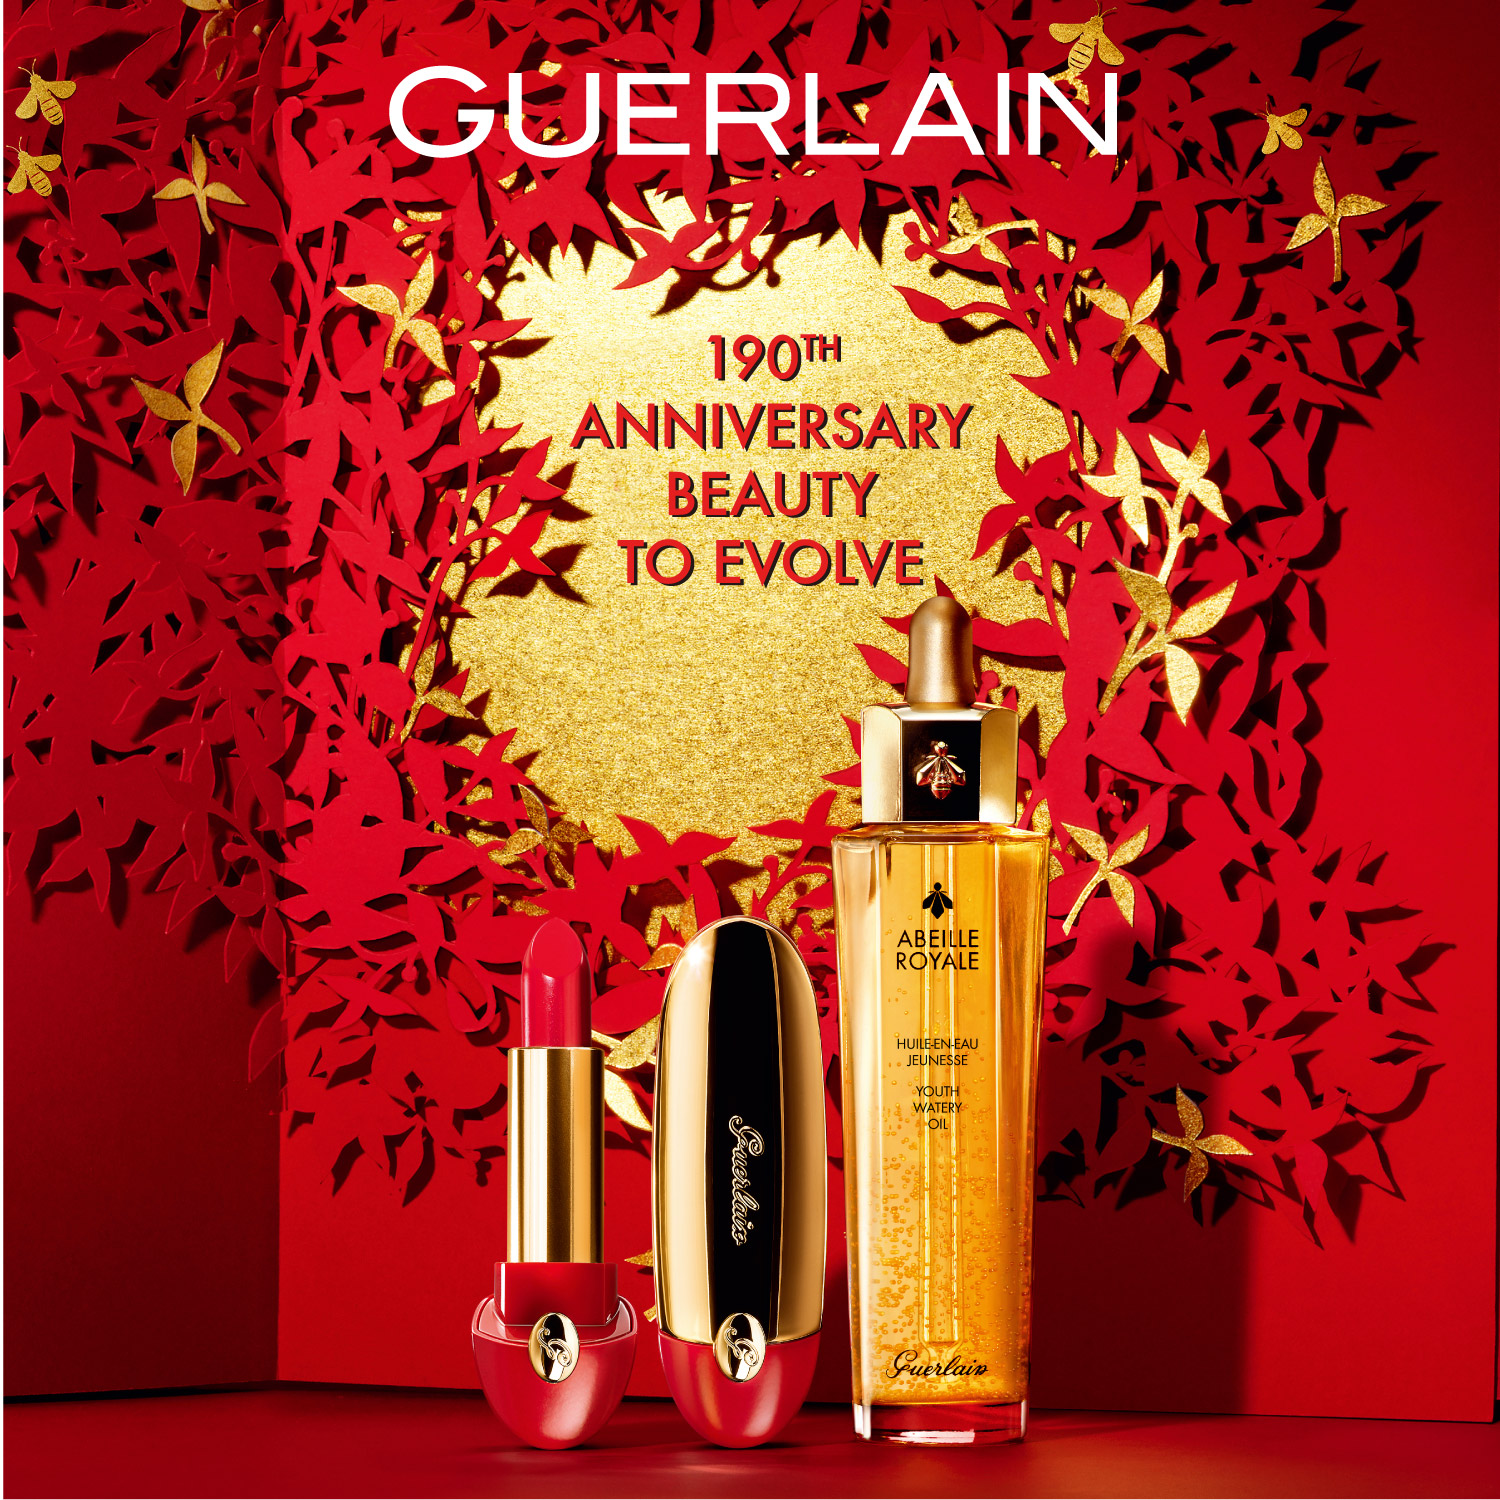 Guerlain, two centuries of Fame, Success, and Innovation!